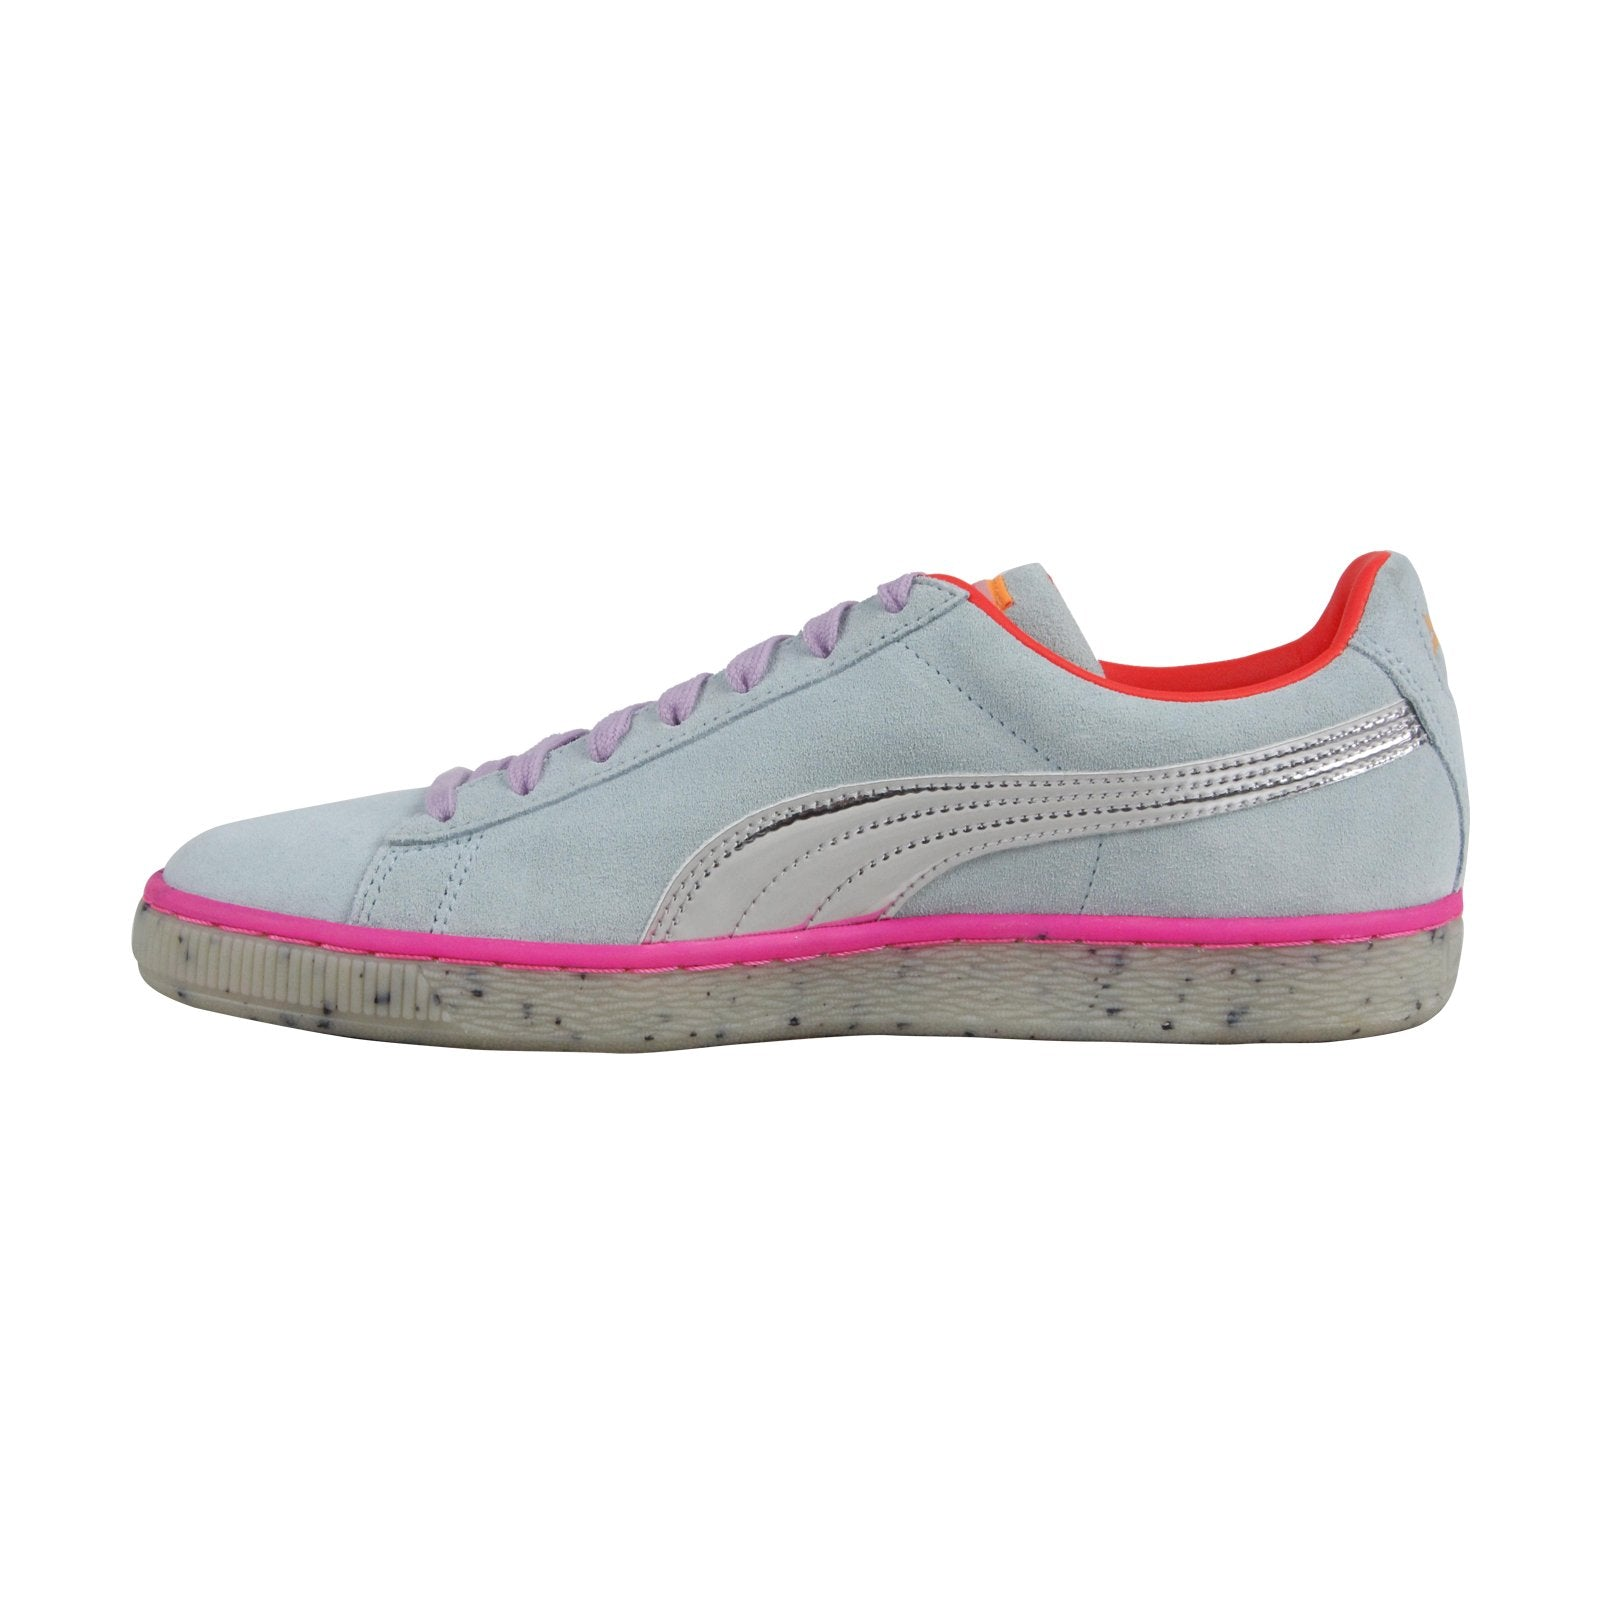 Puma Suede Candy Princess Sophia Webster Womens Blue Lace Up